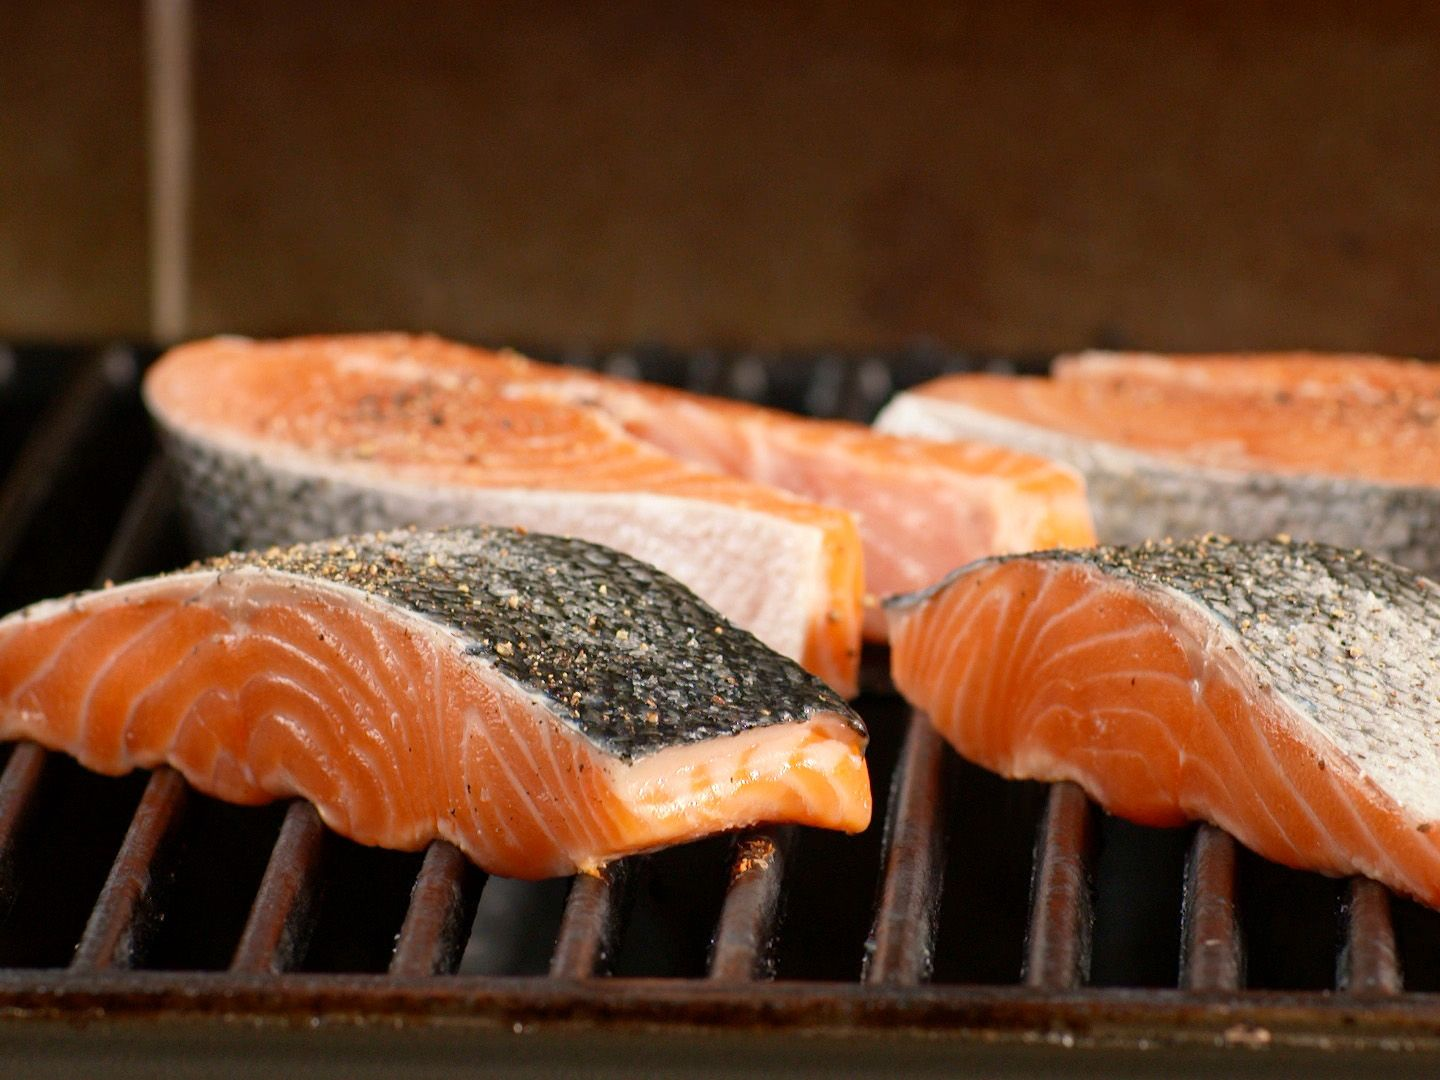 How To Grill Salmon Food Network Recipes Salmon Food Network Food